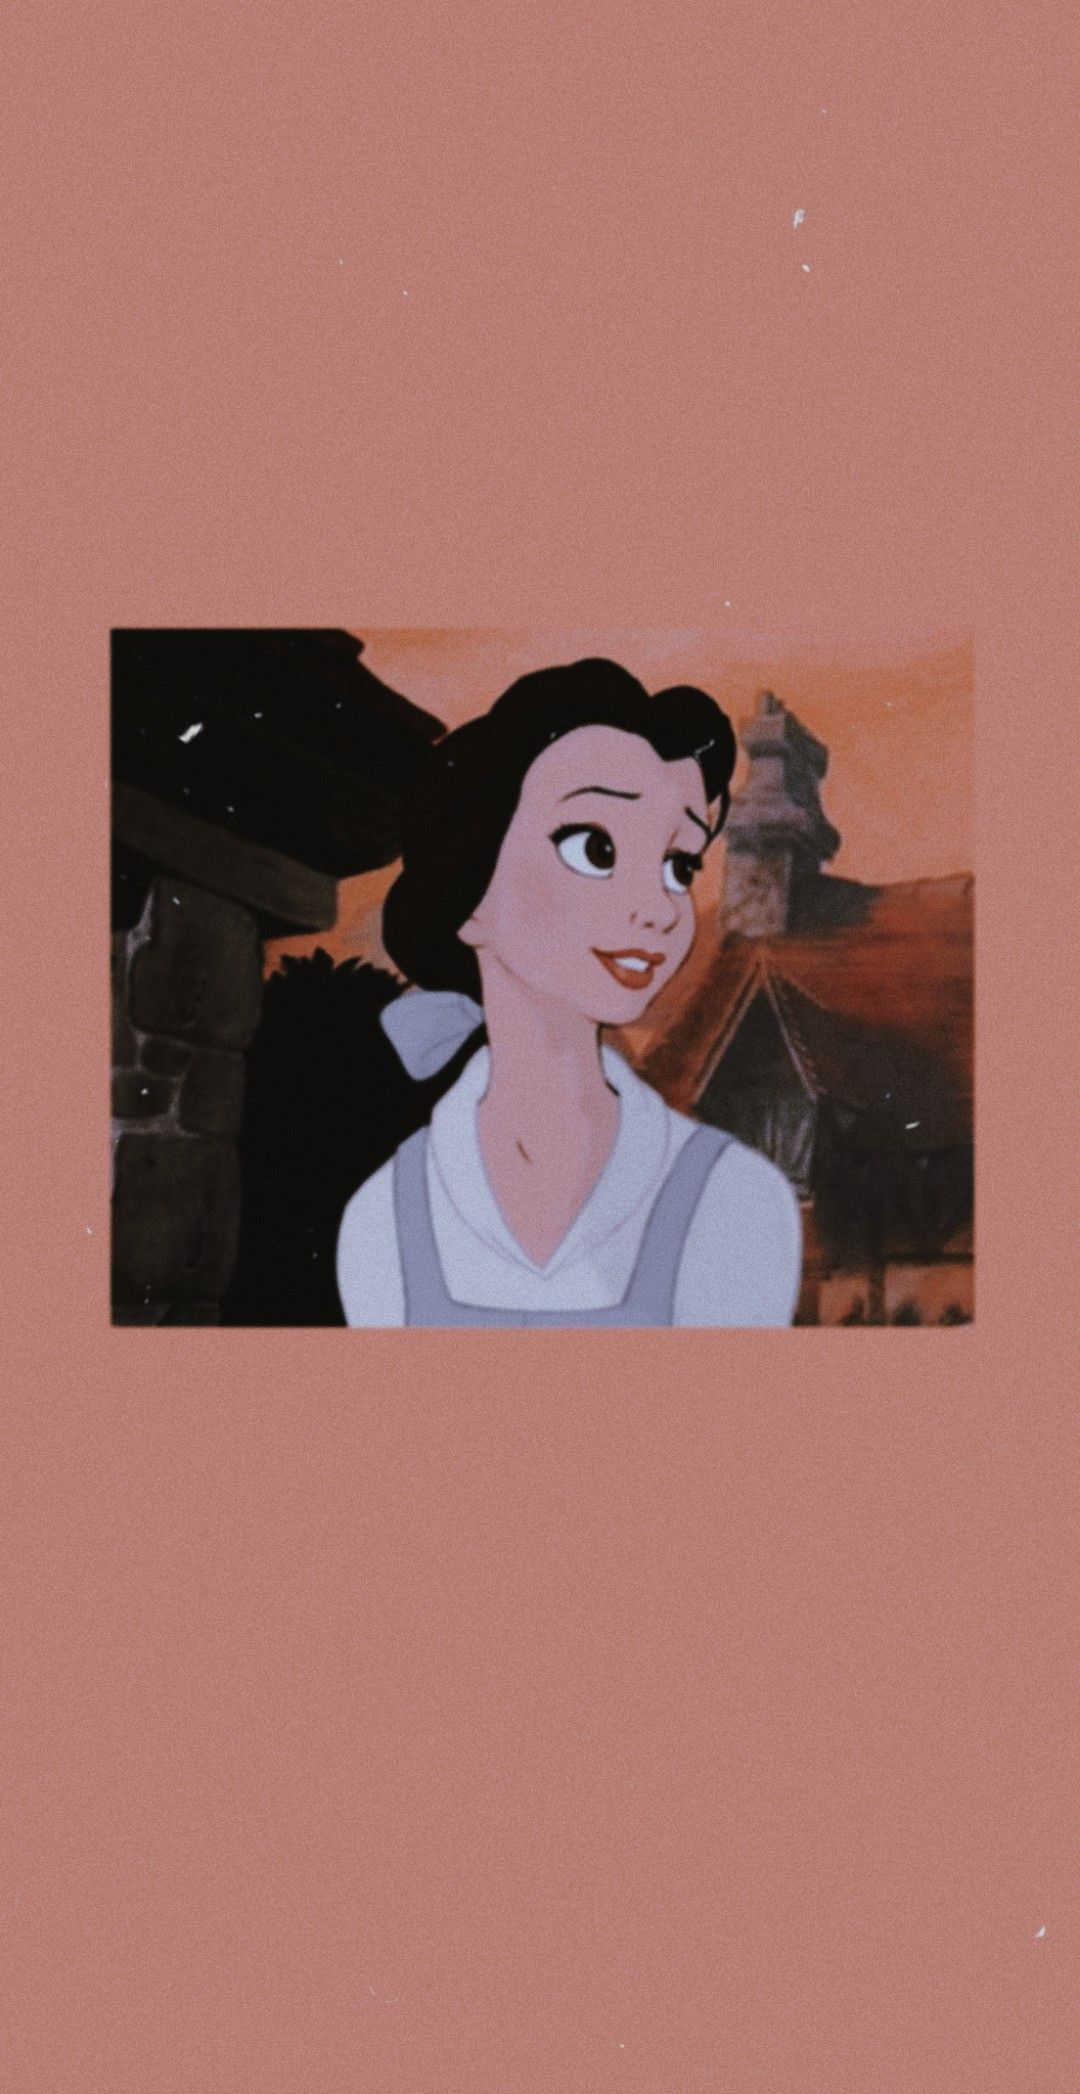 Beauty And The Beast Belle Aesthetic Wallpaper Disney Wallpaper Cartoon Wallpaper Cartoon Wallpaper Iphone